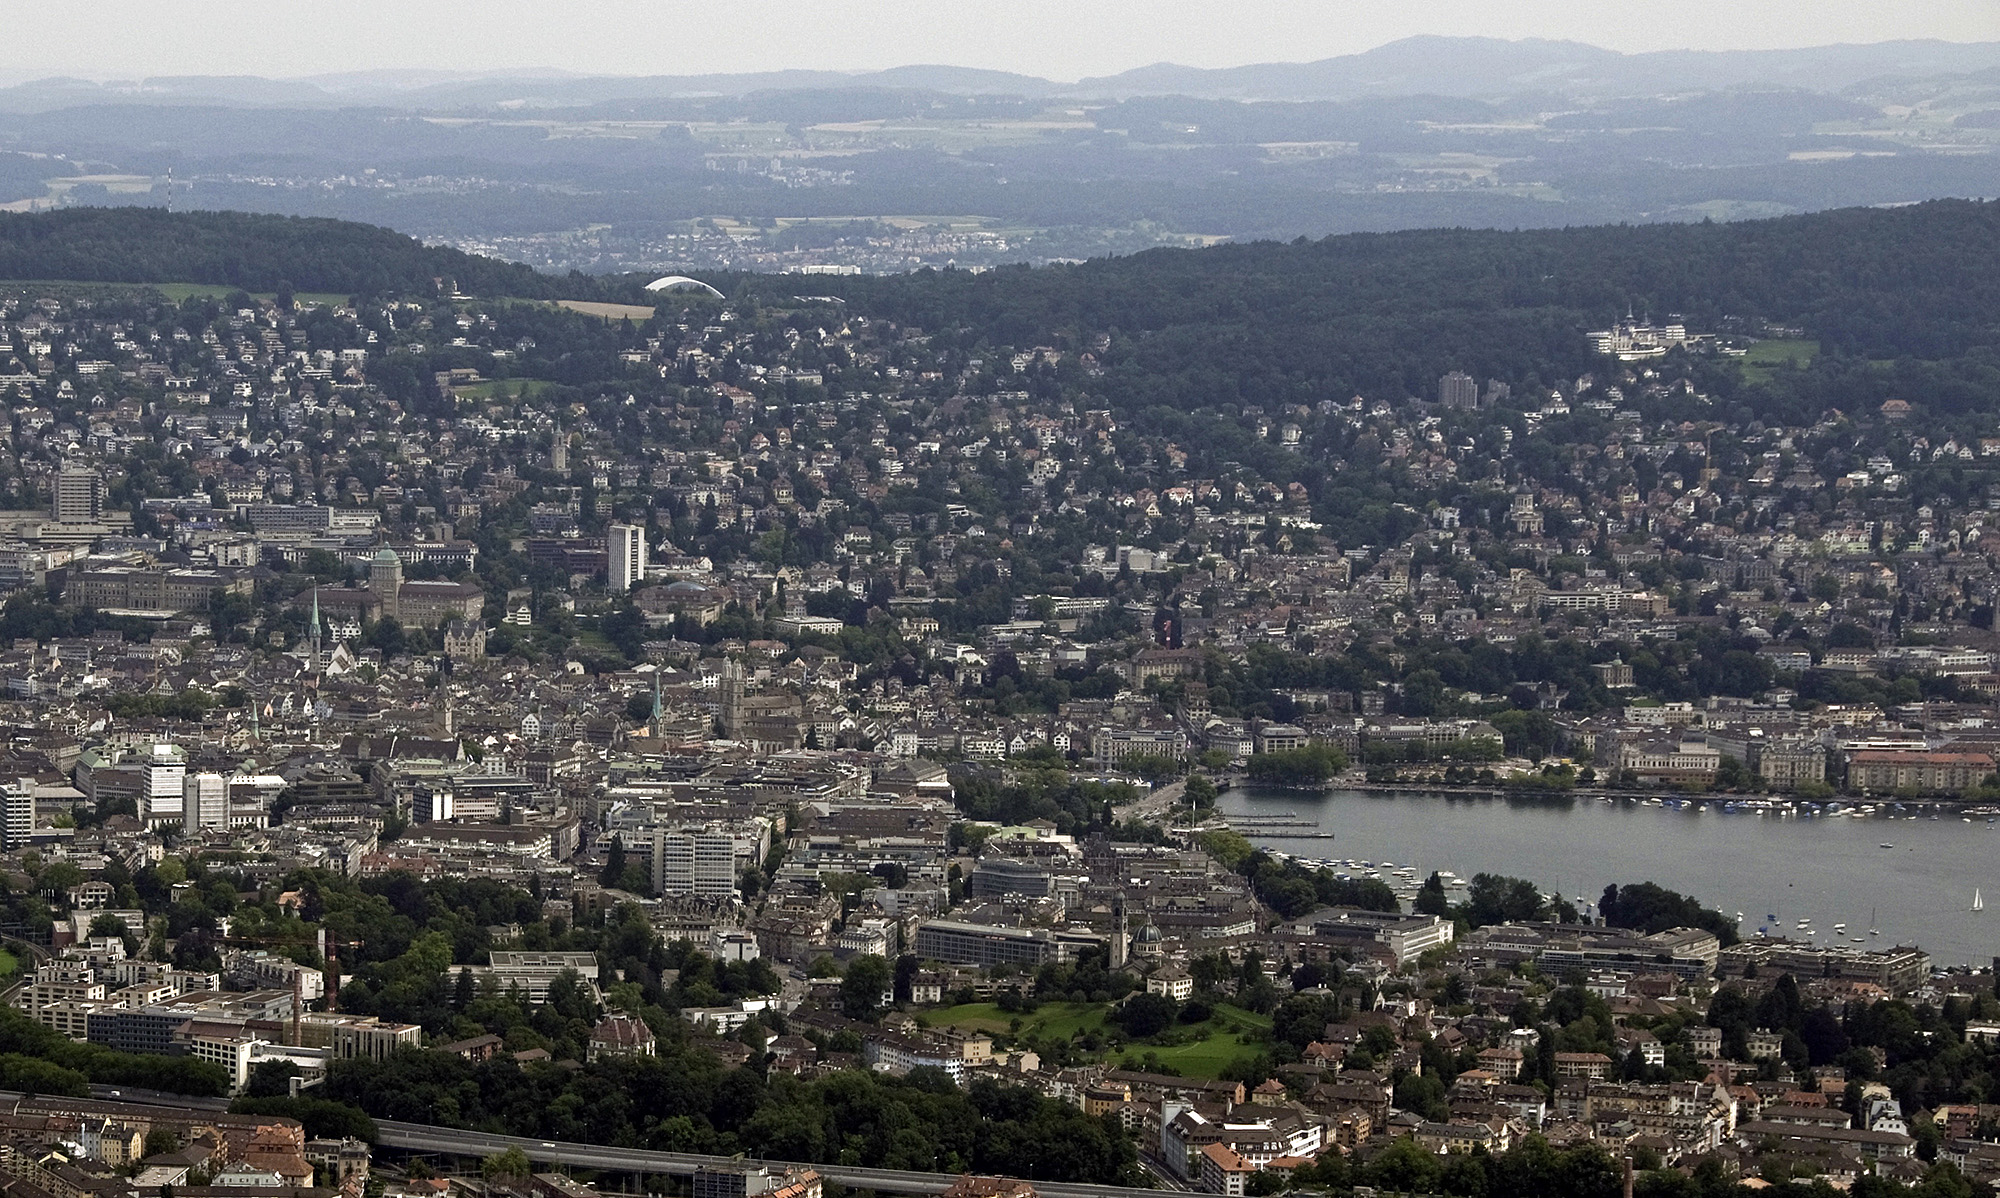 Uetilberg Tower view over Zurich